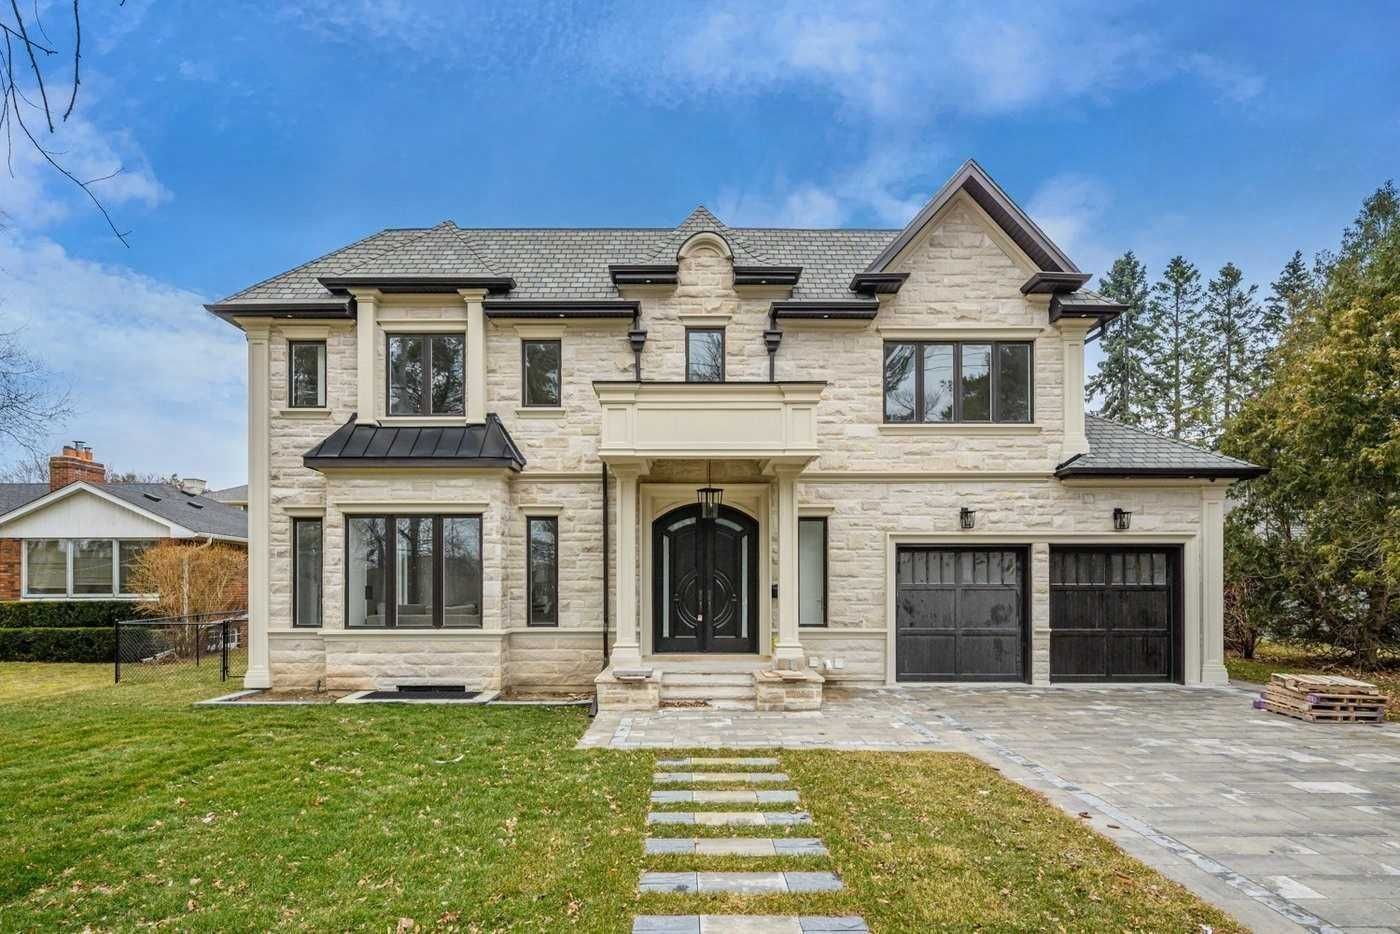 577 Indian Rd, Mississauga, Ontario L5H1R1, 4 Bedrooms Bedrooms, 9 Rooms Rooms,6 BathroomsBathrooms,Detached,For Sale,Indian,W4832819